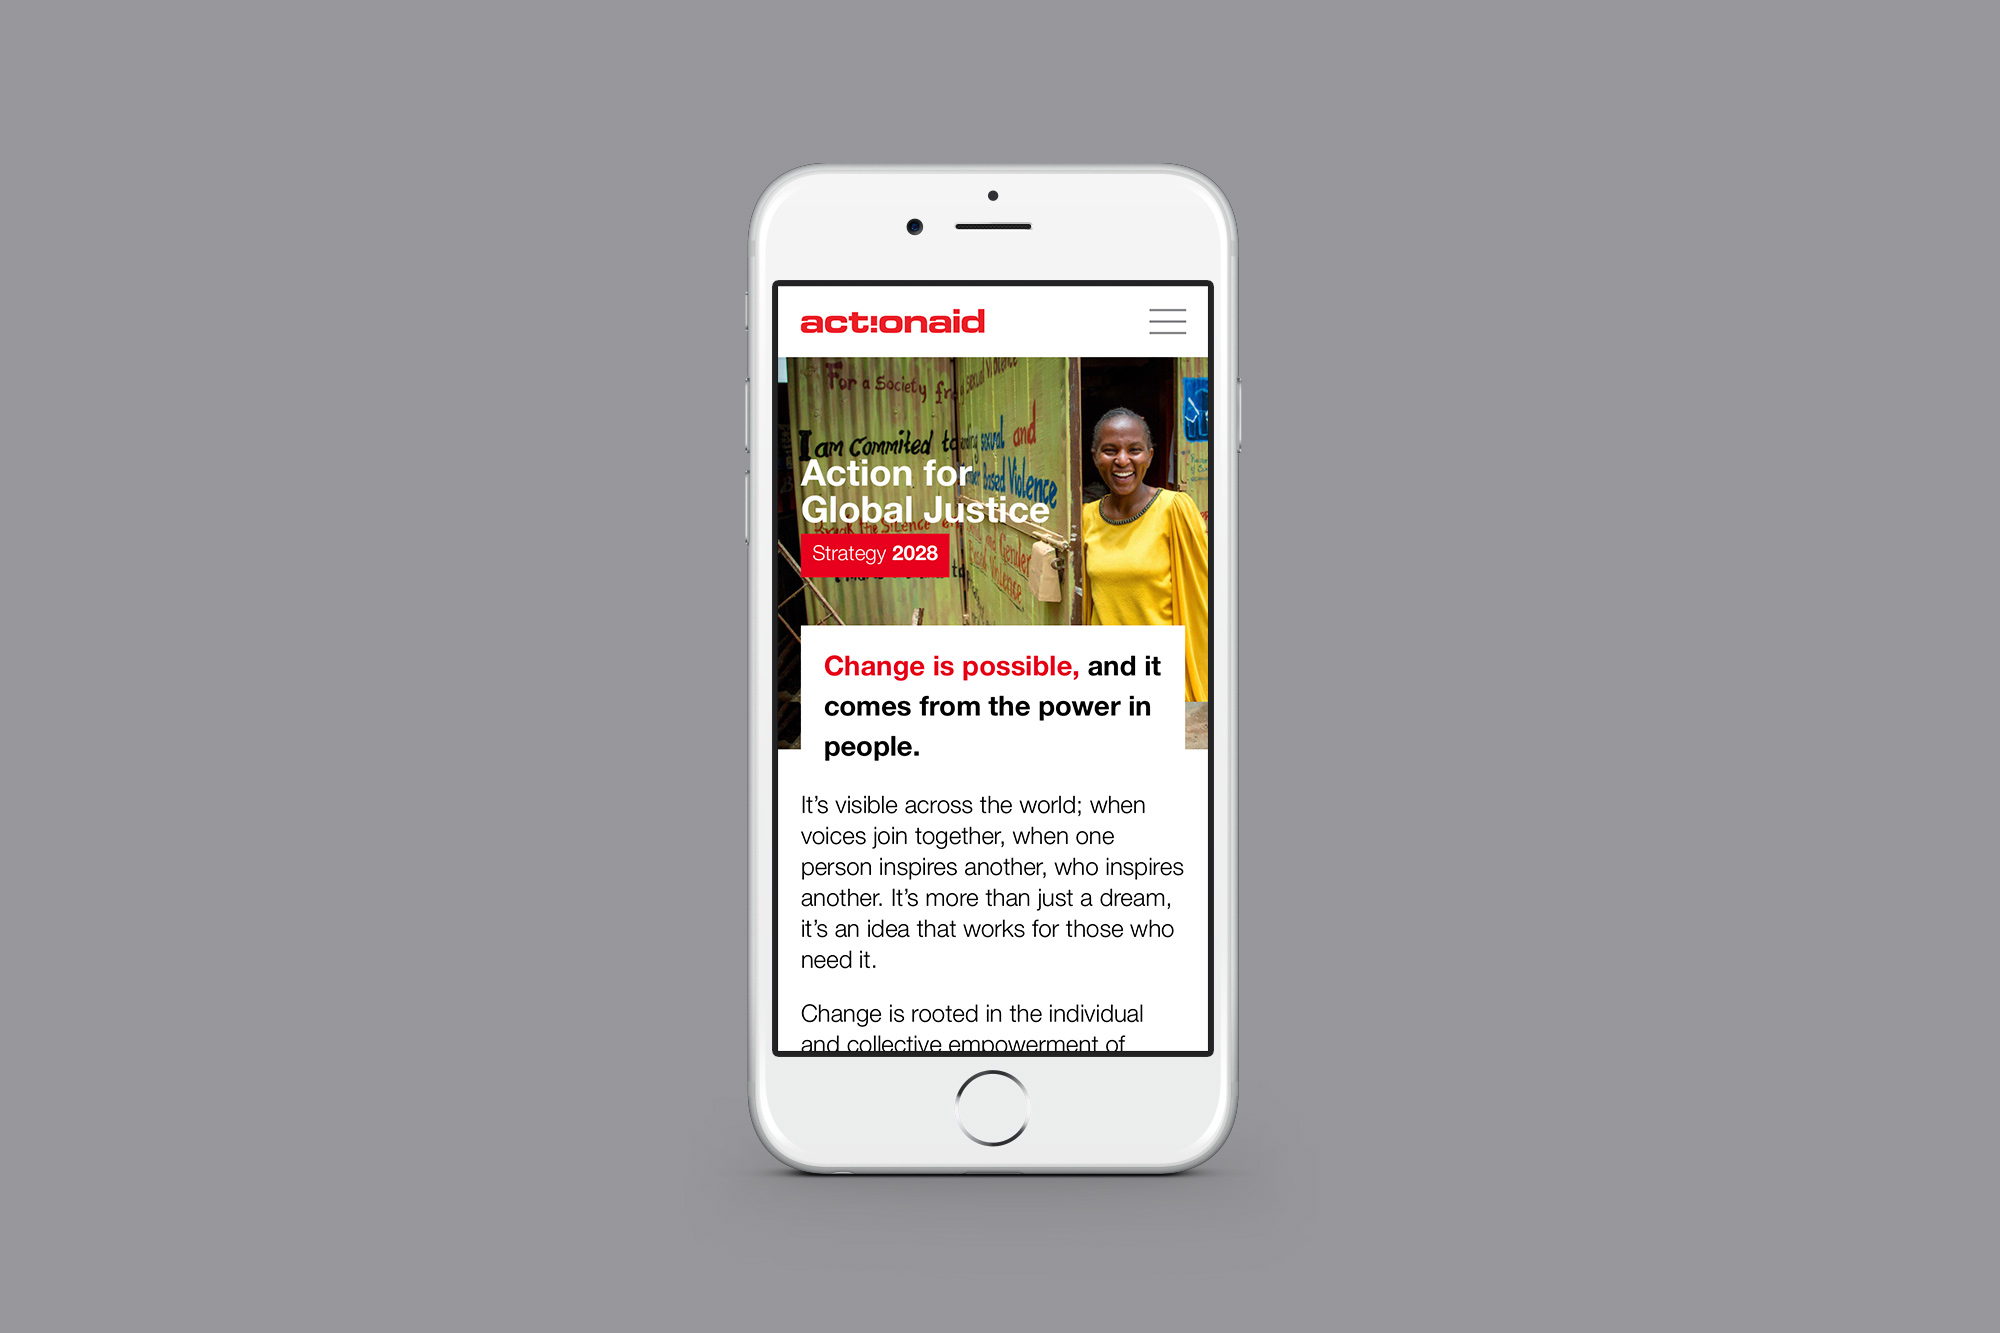 nick-purser-design-actionaid-strategy-2028-09